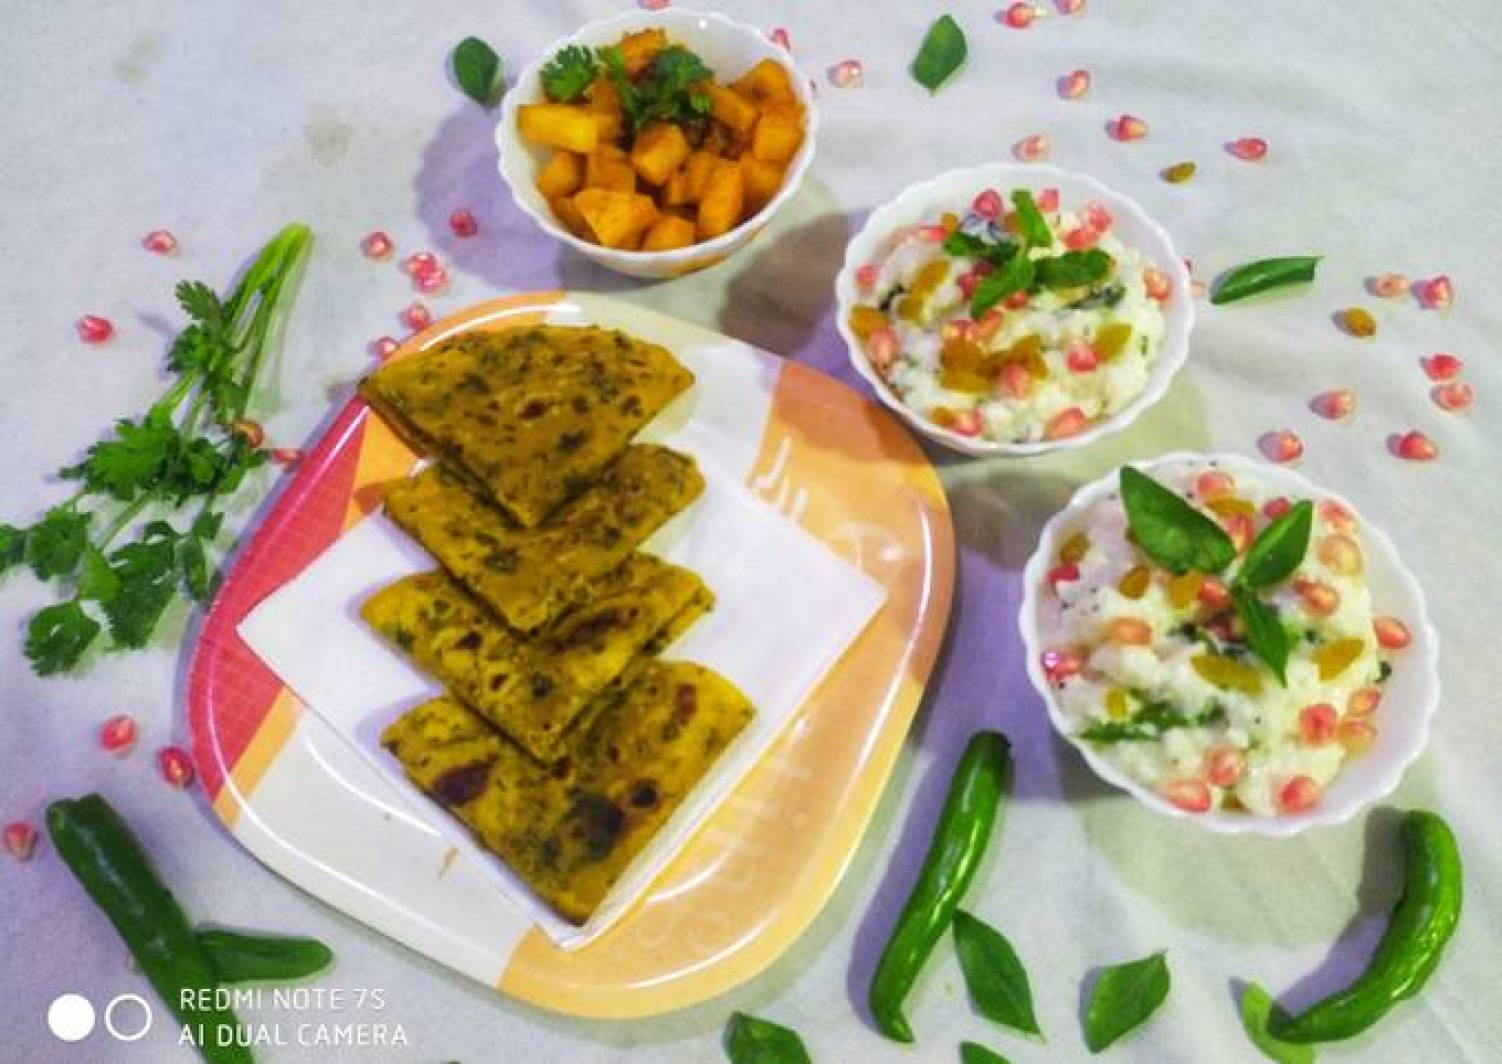 Curd Rice with Potato fry and Palak Roti Thepla